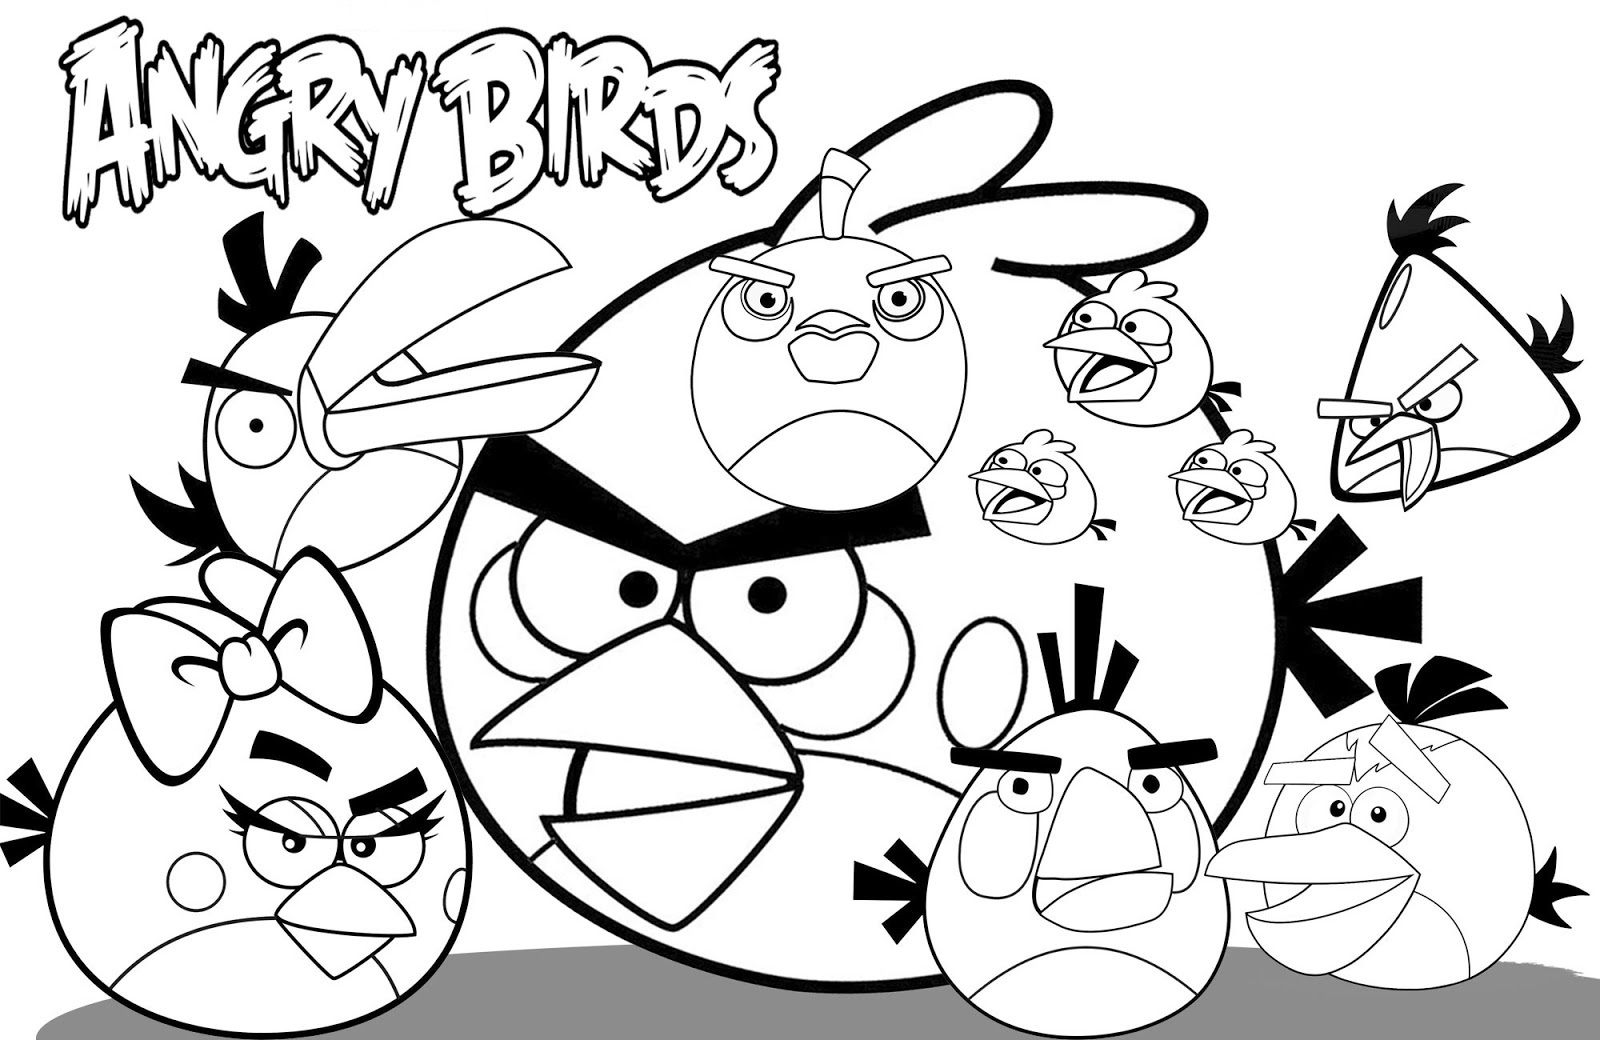 Adult Cute Birds Coloring Page Gallery Images beauty free printable angry bird coloring pages for kids to print images